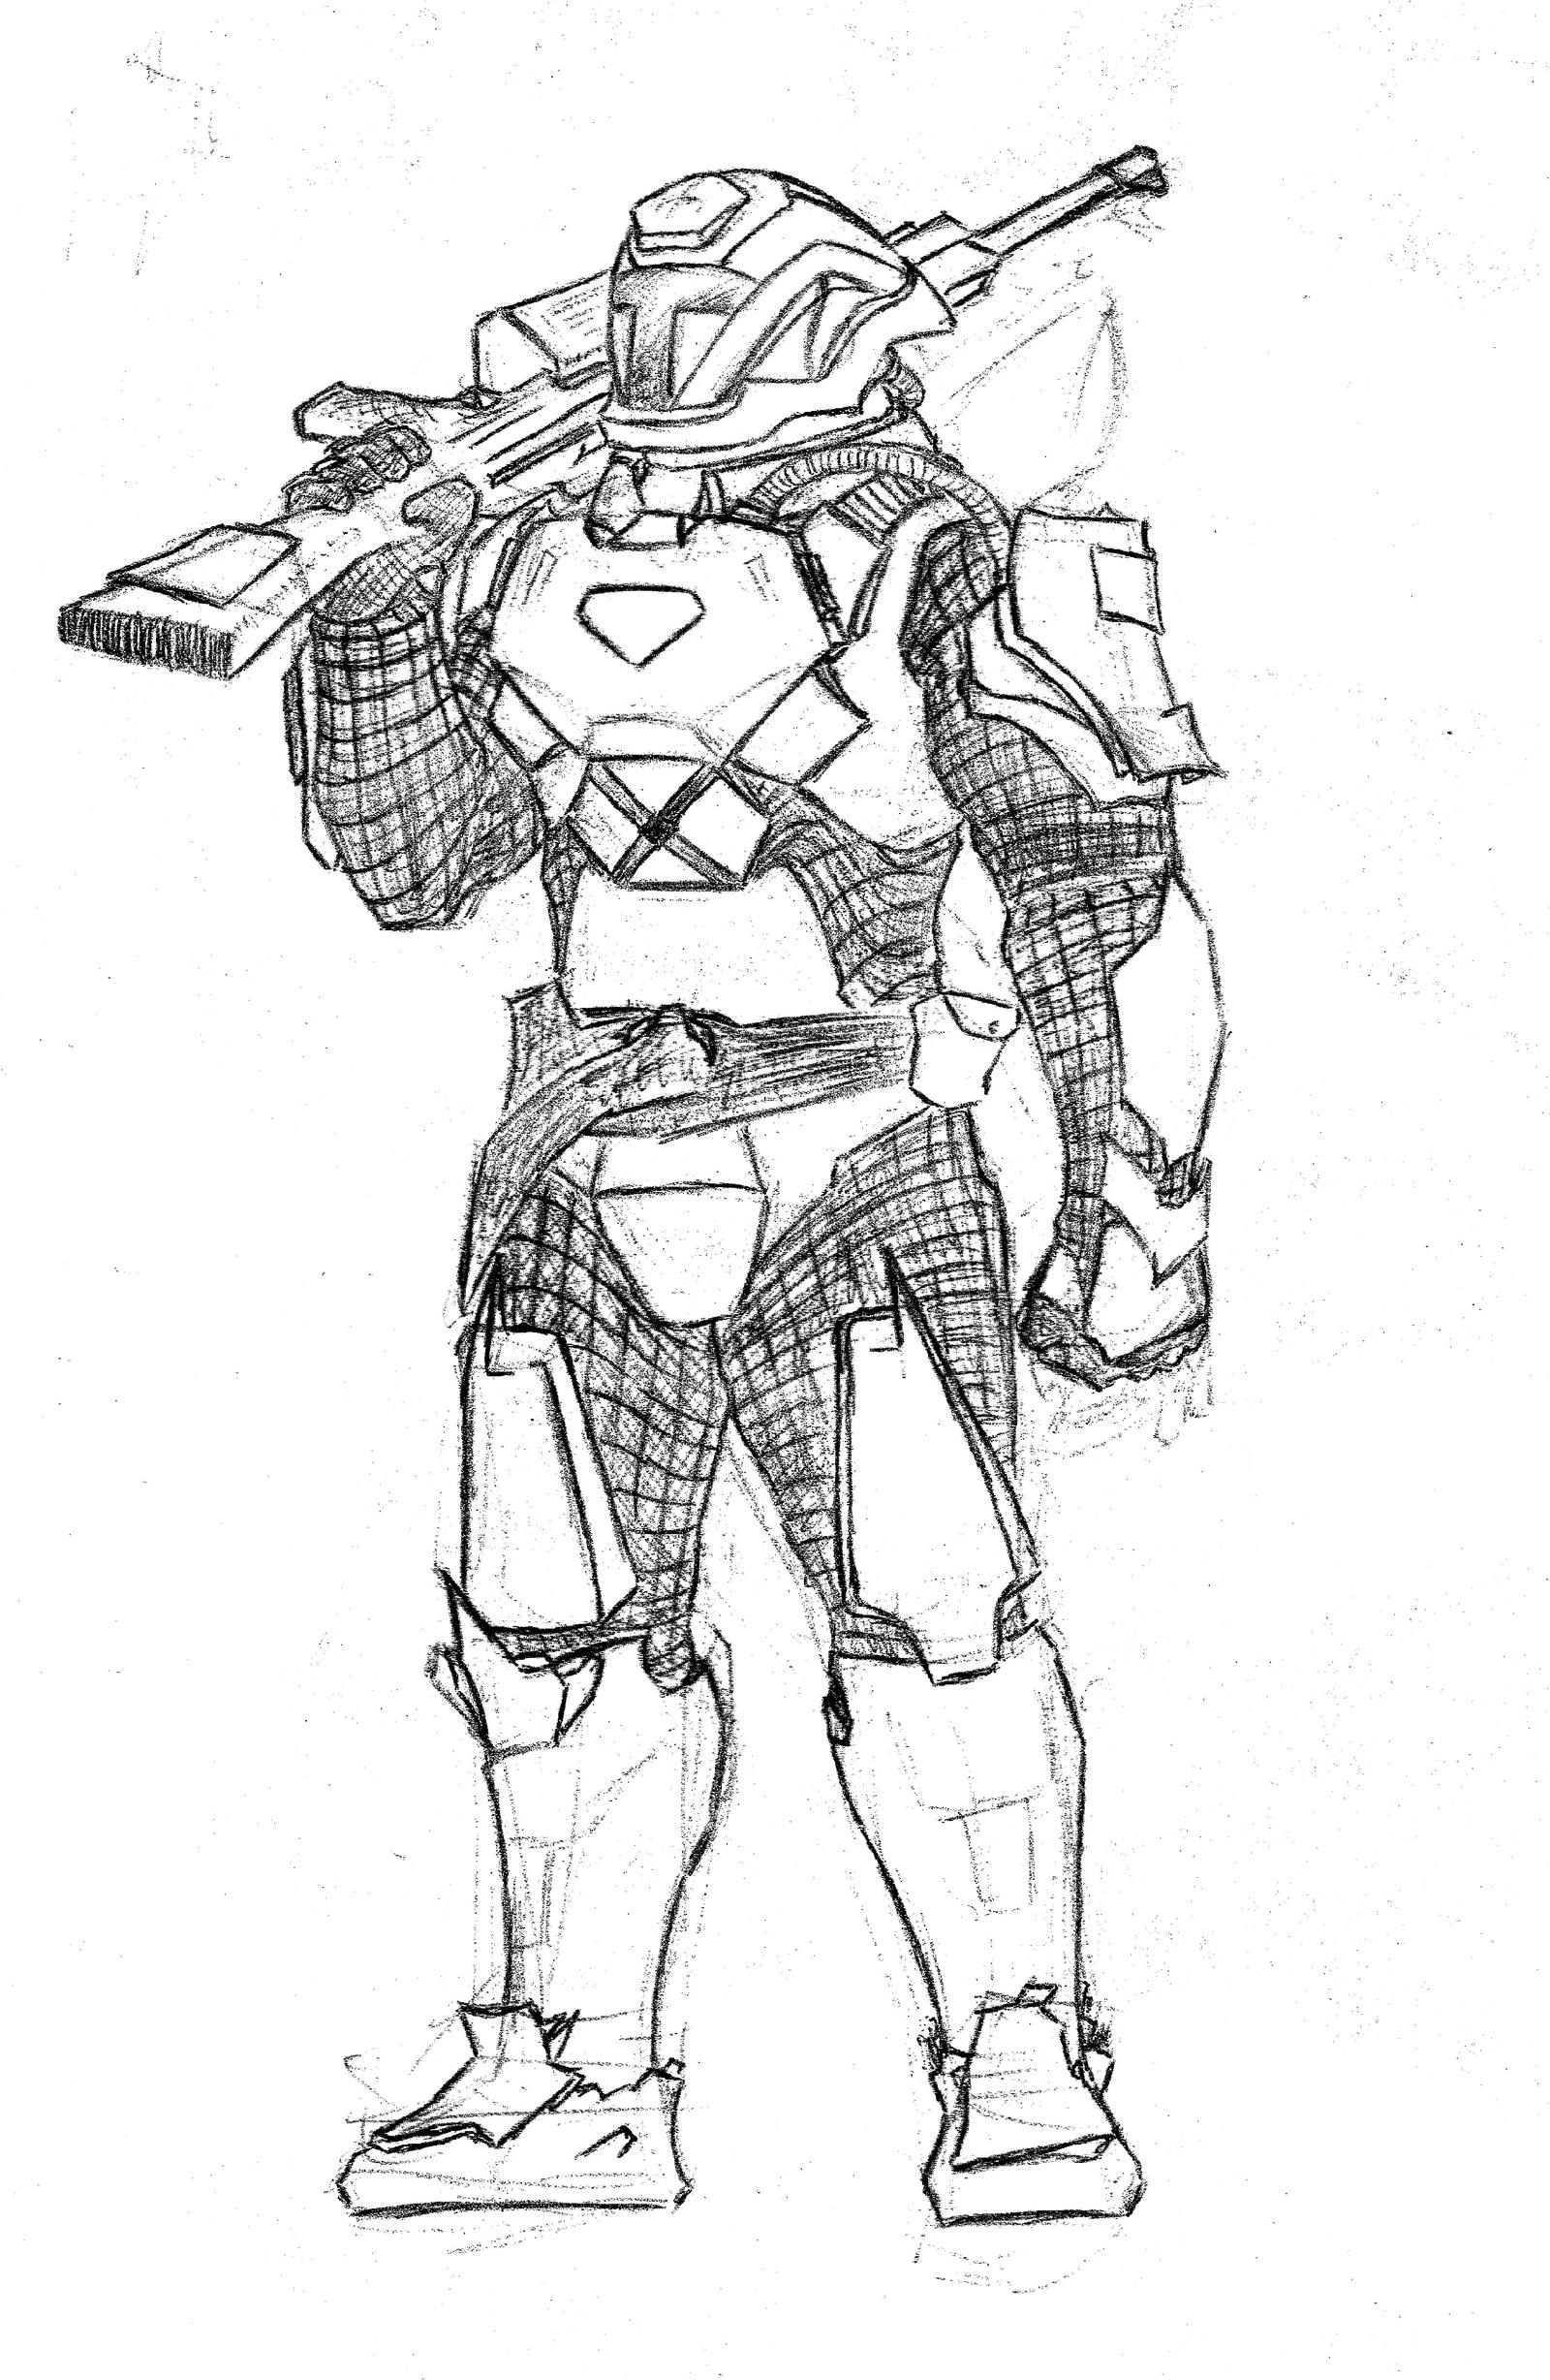 destiny 2 coloring pages | All Destiny Coloring Pages Coloring Pages - Simple ...